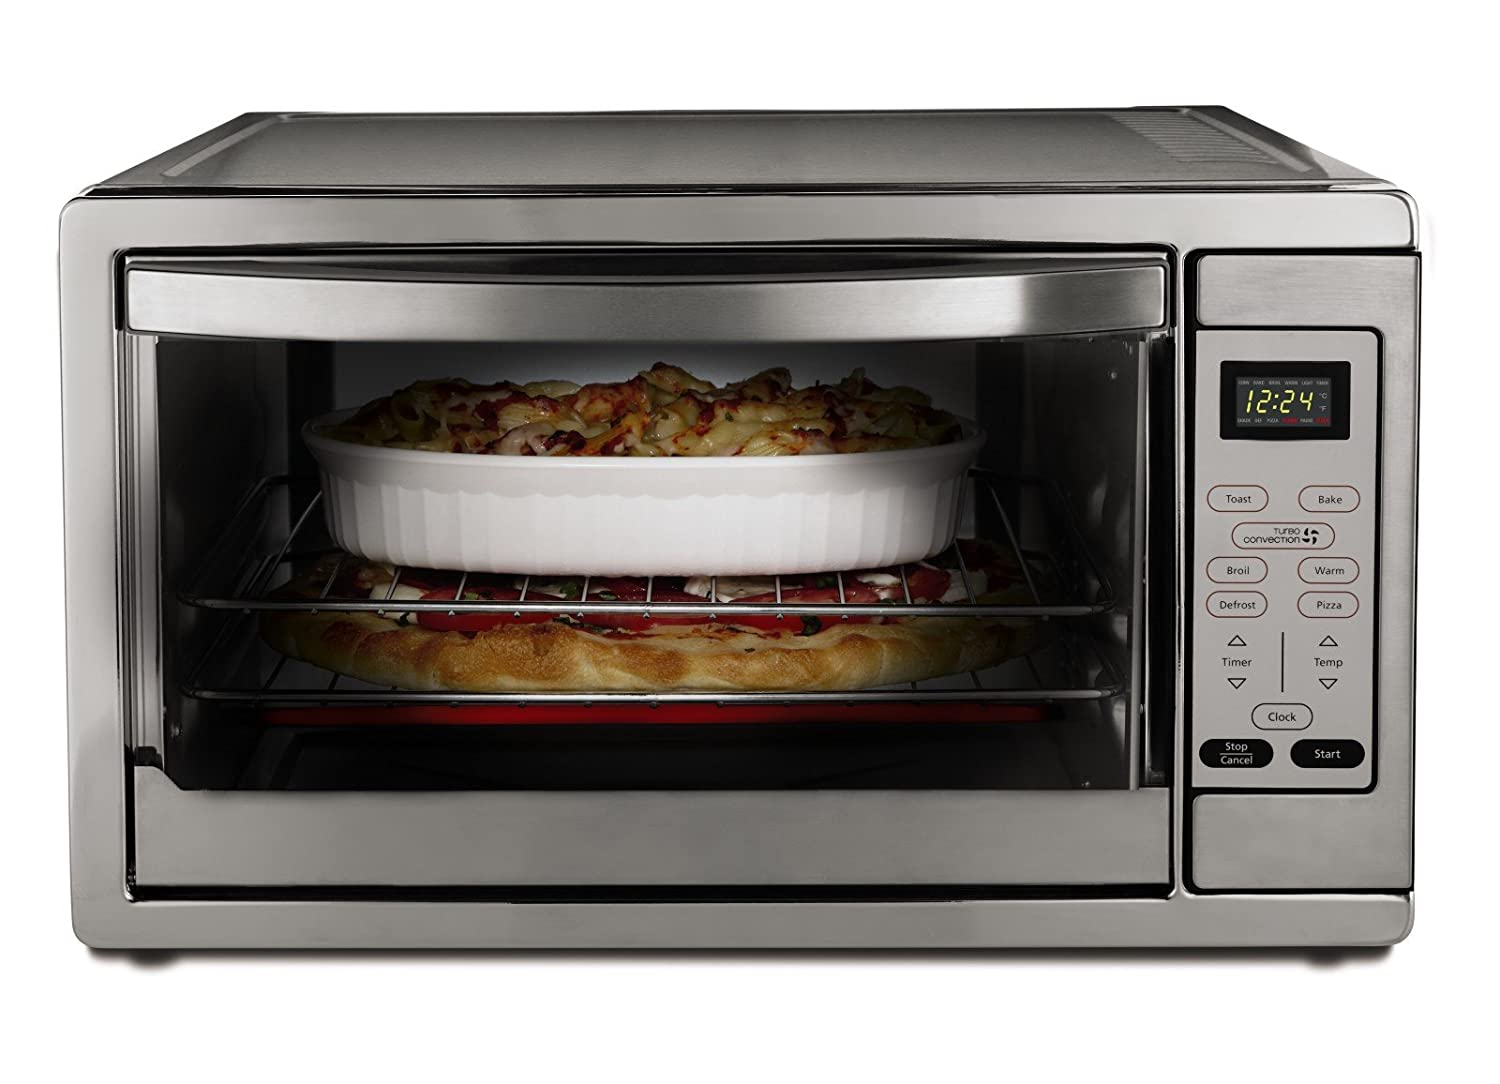 Amazon: 2 X Oster Extra Large Digital Countertop Oven, Stainless Steel,  Tssttvdgxlshp: Kitchen & Dining